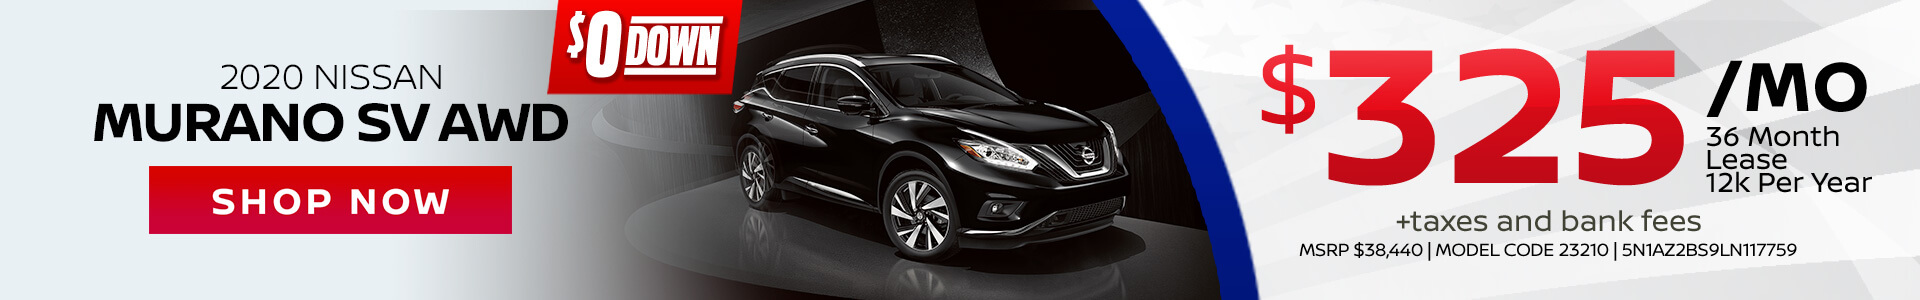 Nissan Murano $325 Lease